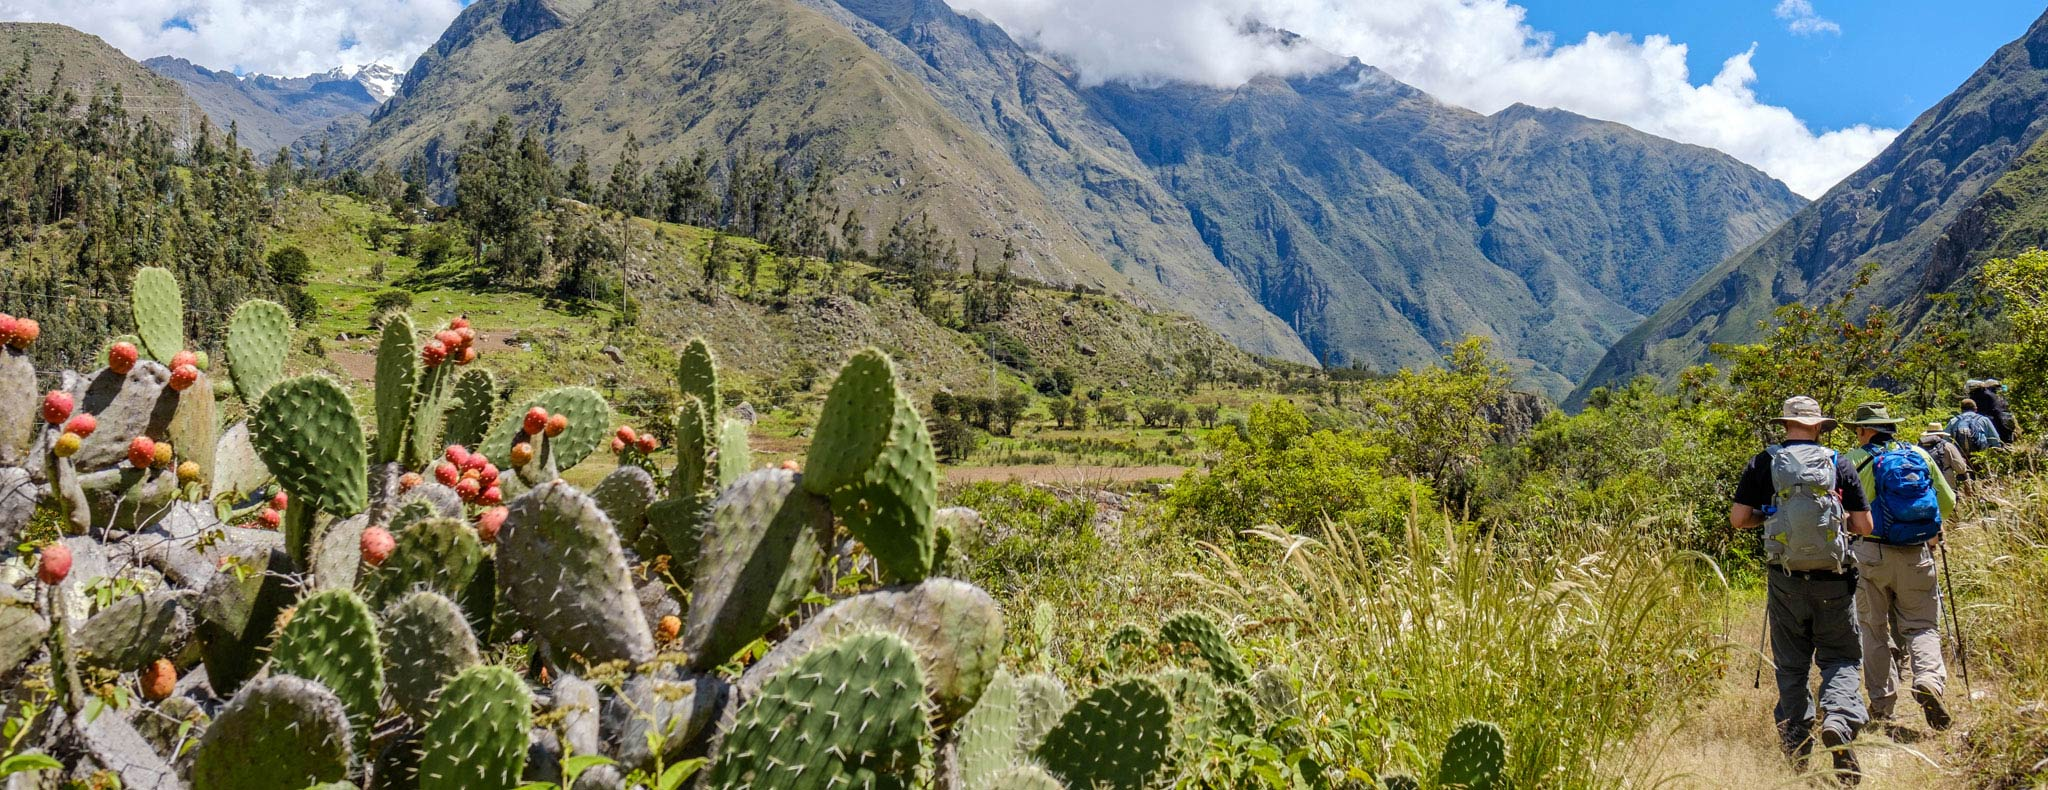 backpackers trekking Inca Trail in Alausí, Ecuador